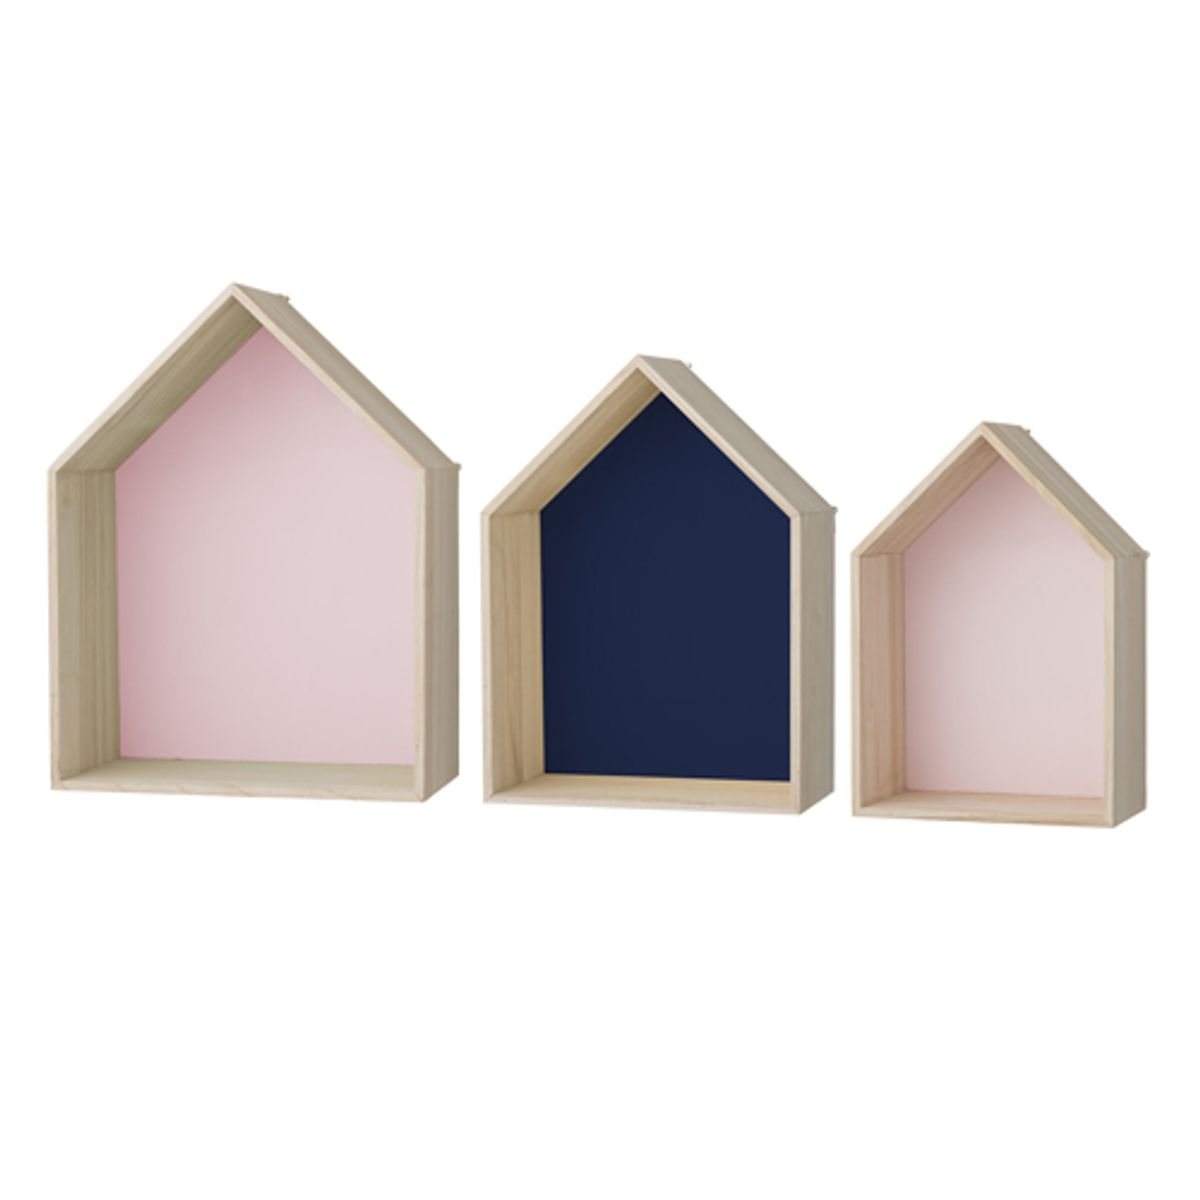 etag re murale maison en bois rose et bleu bloomingville par 3 decoclico. Black Bedroom Furniture Sets. Home Design Ideas